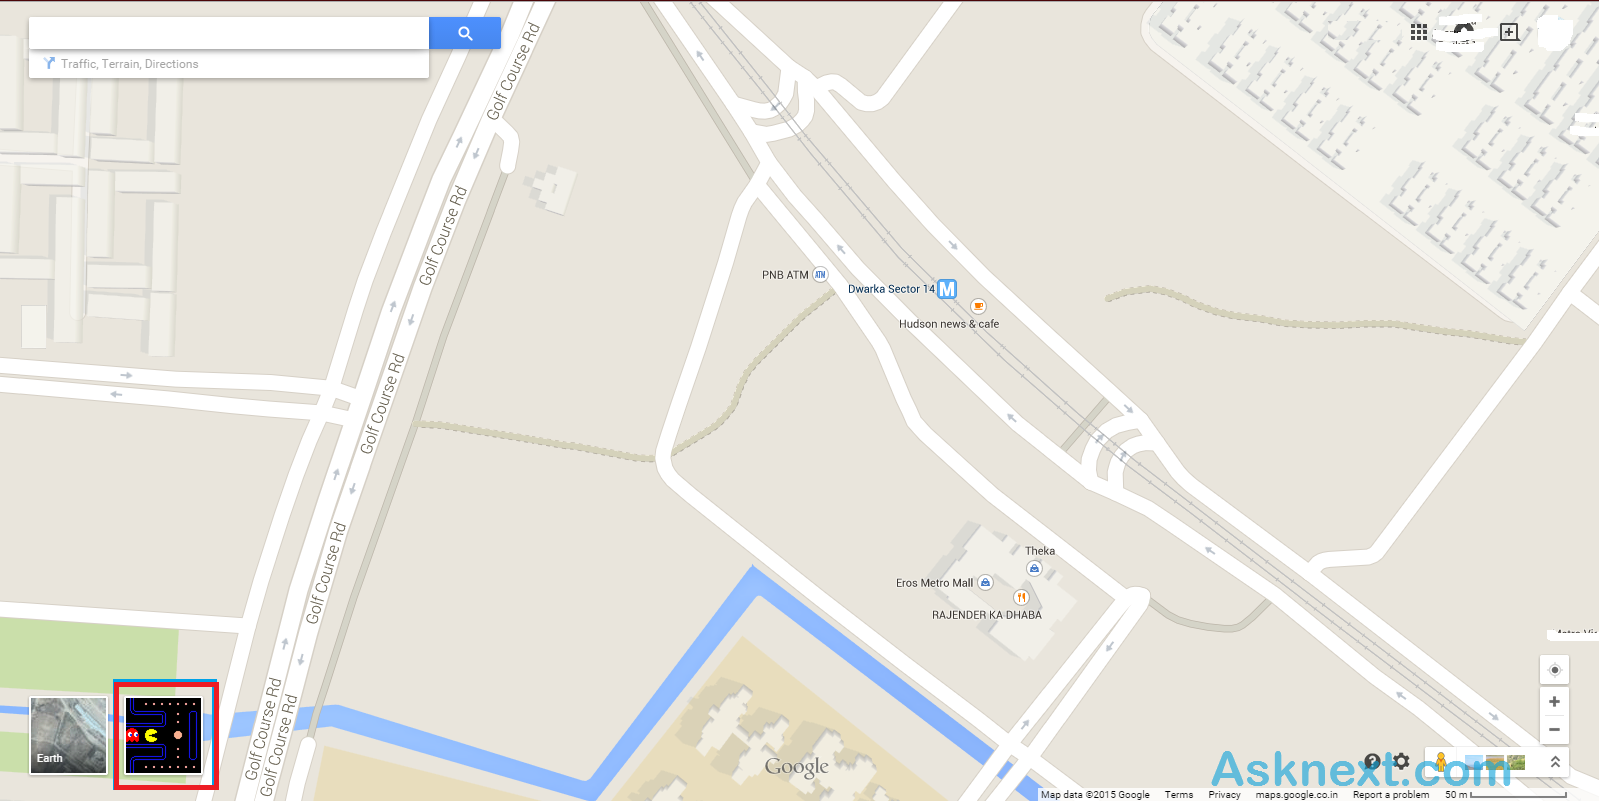 PAC-MAN game in Google Maps